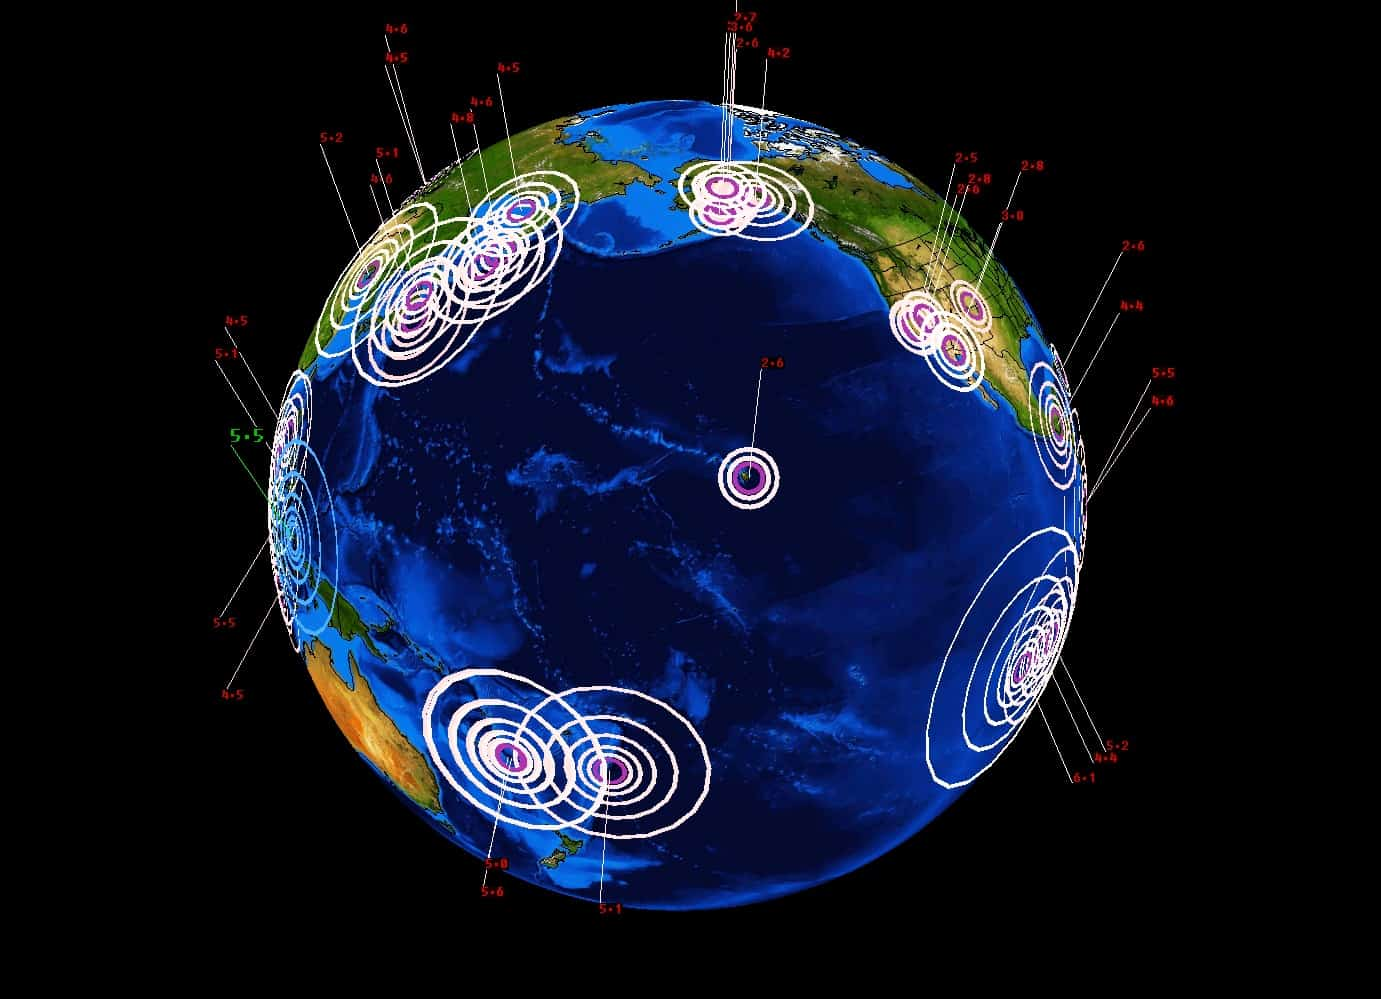 PAST 7 DAYS OF EARTHQUAKES SHOWS GLOBAL UNREST UNDERWAY